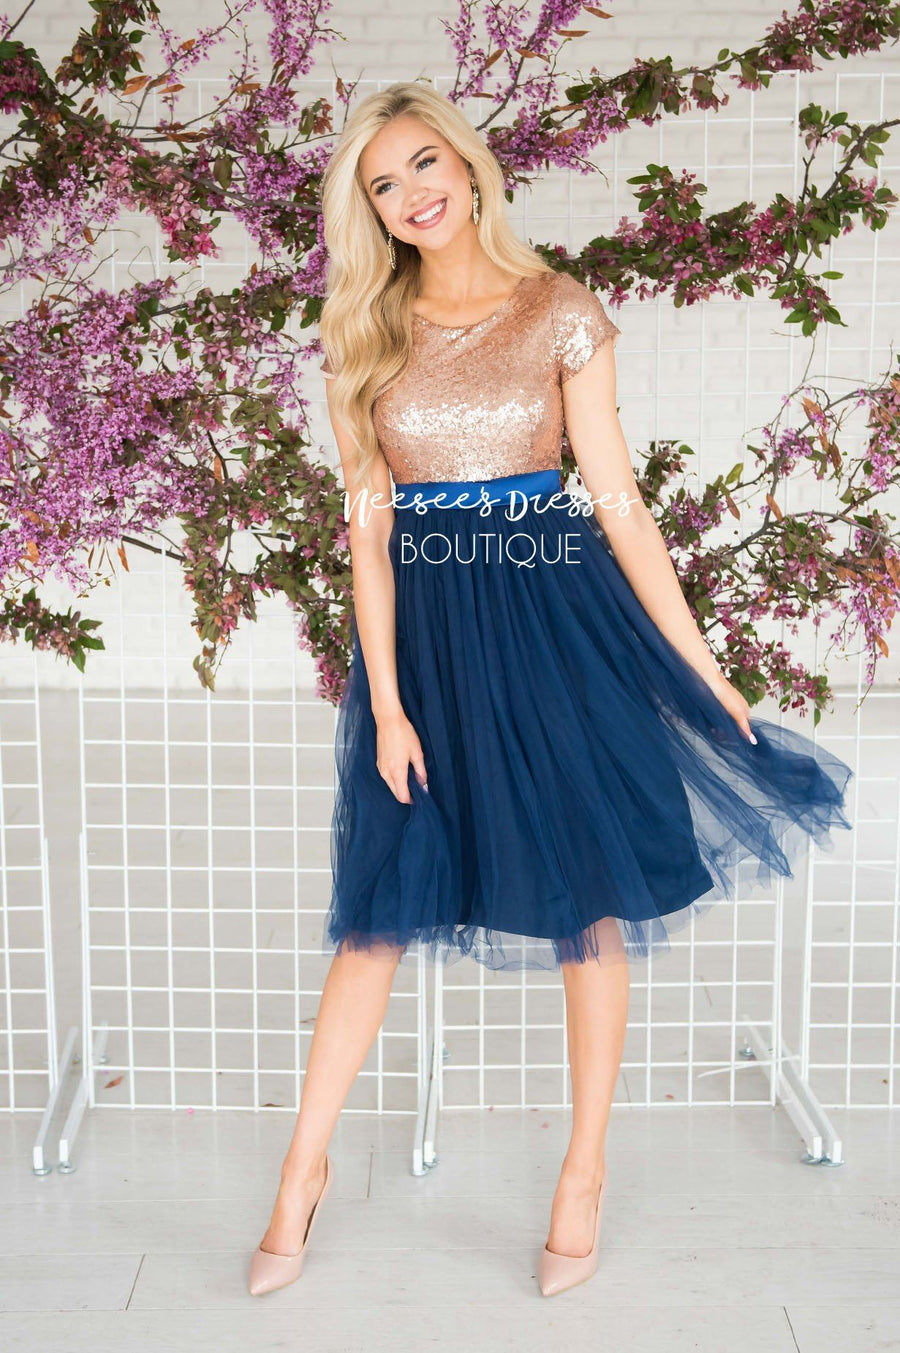 Prima Ballerina Tulle Dress